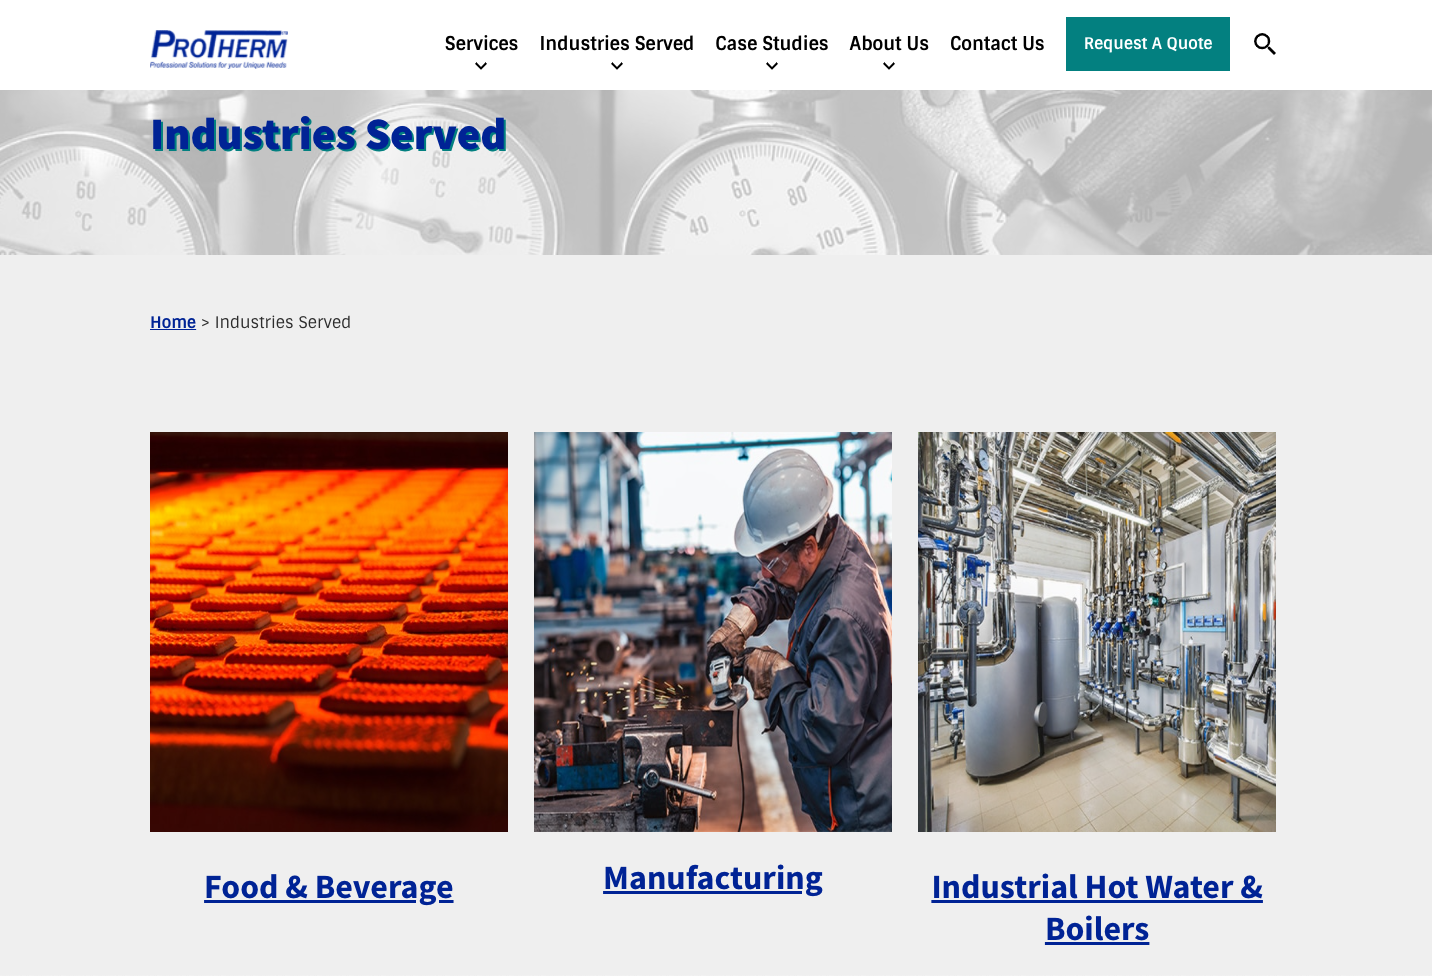 ProTherm Industries Served - HVAC digital marketing and advertising plan example